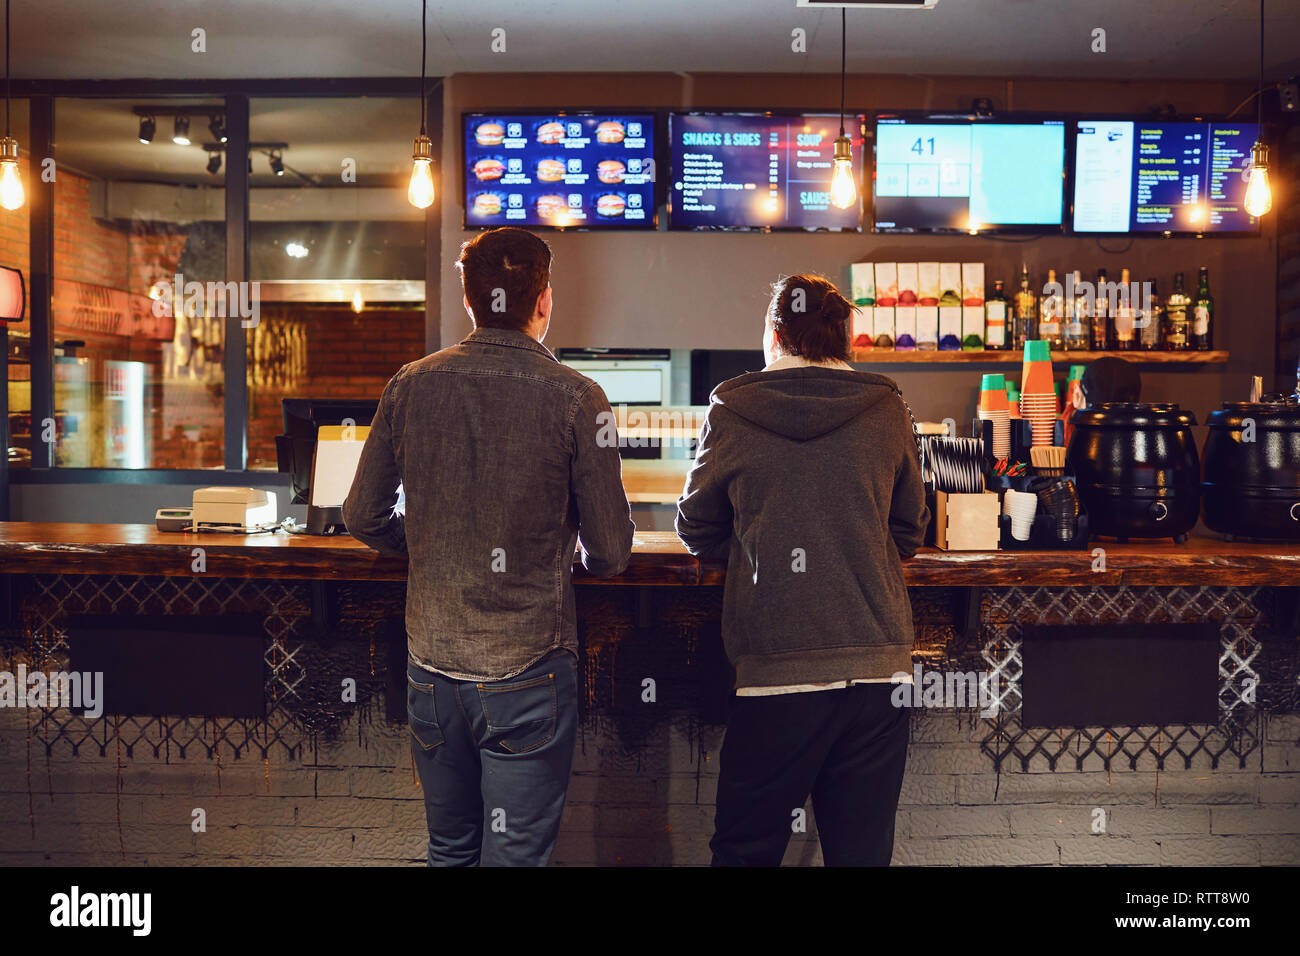 Two men choose food in a fast food restaurant. - Stock Image